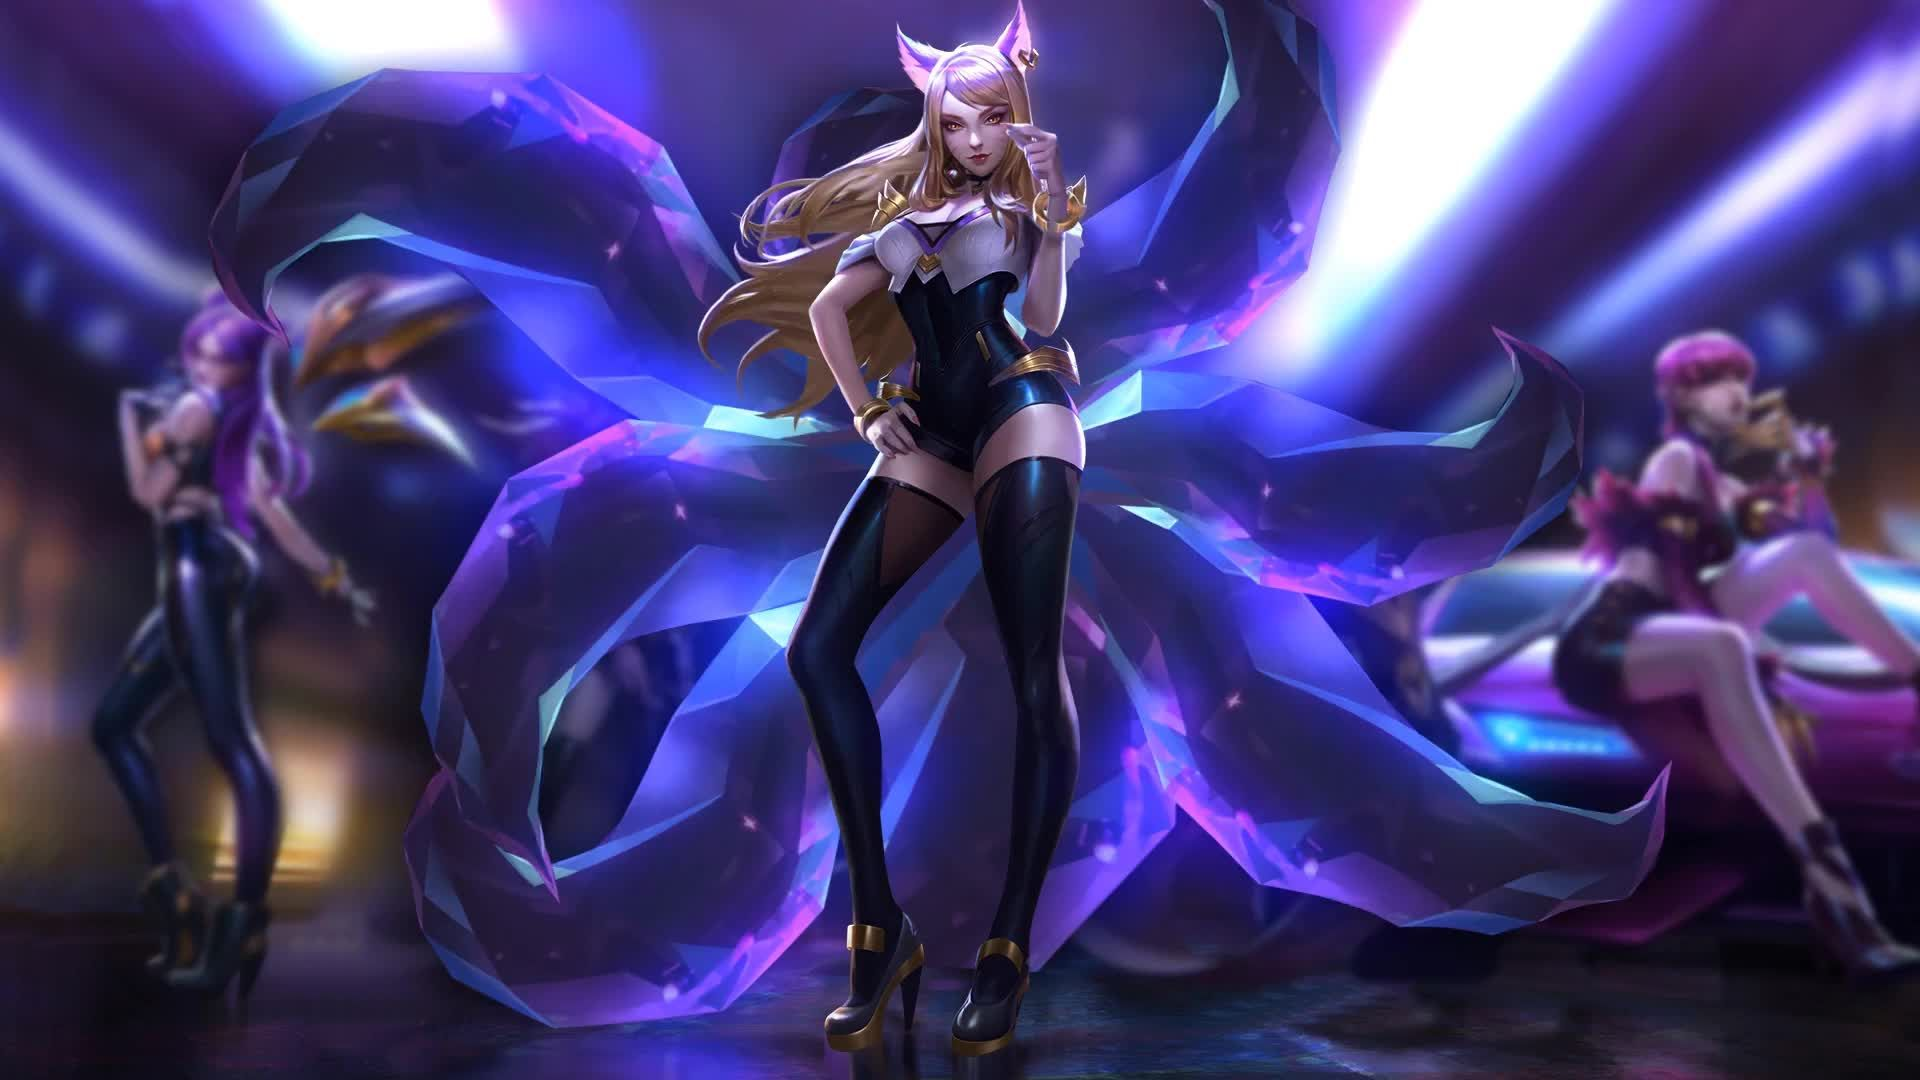 Kda Ahri Heart Live Wallpaper Mobile Legend Wallpaper Anime Wallpaper Live League Of Legends Video